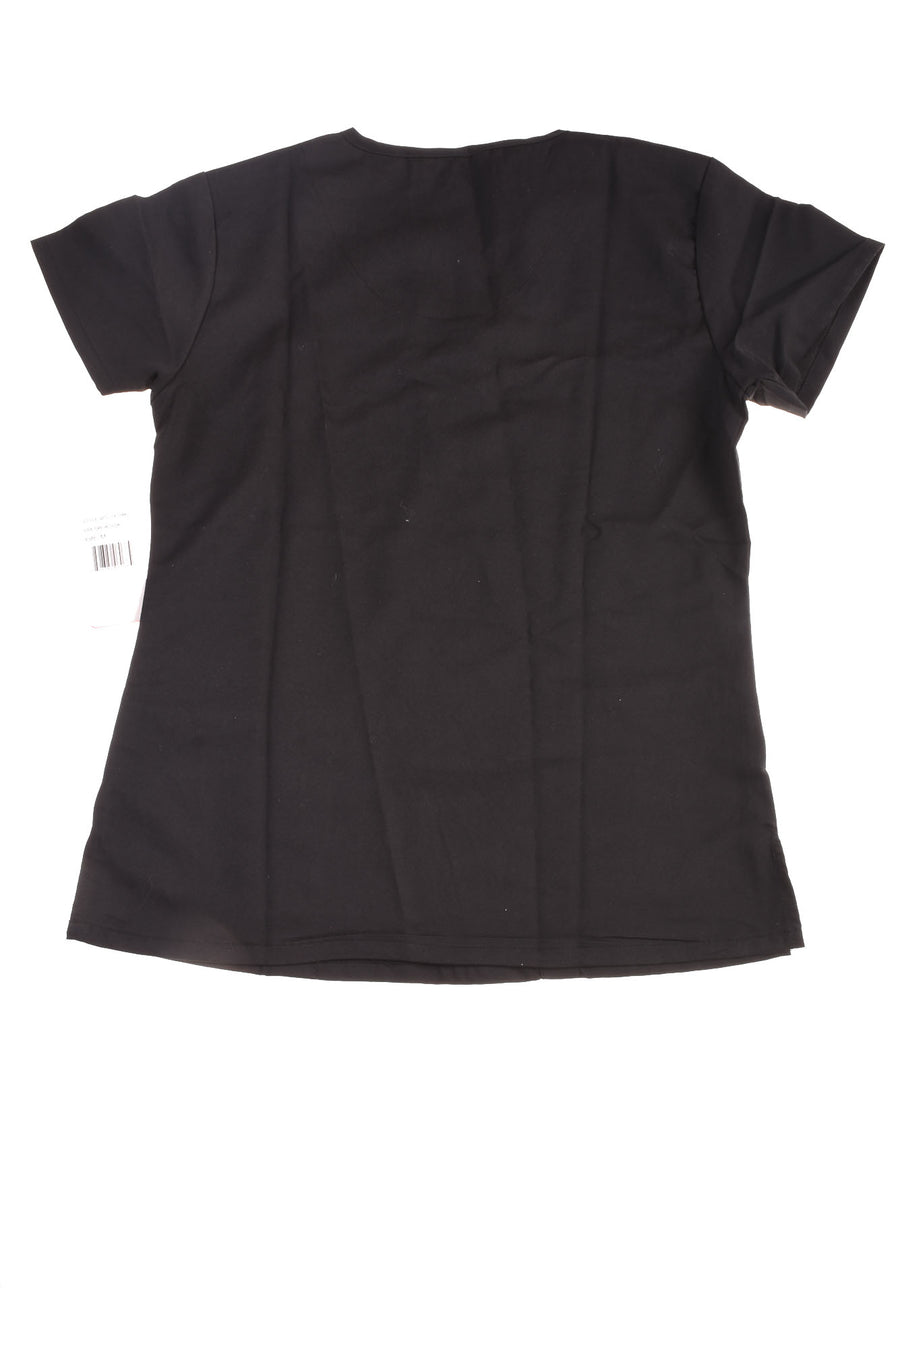 NEW Made Women's Top Medium Black